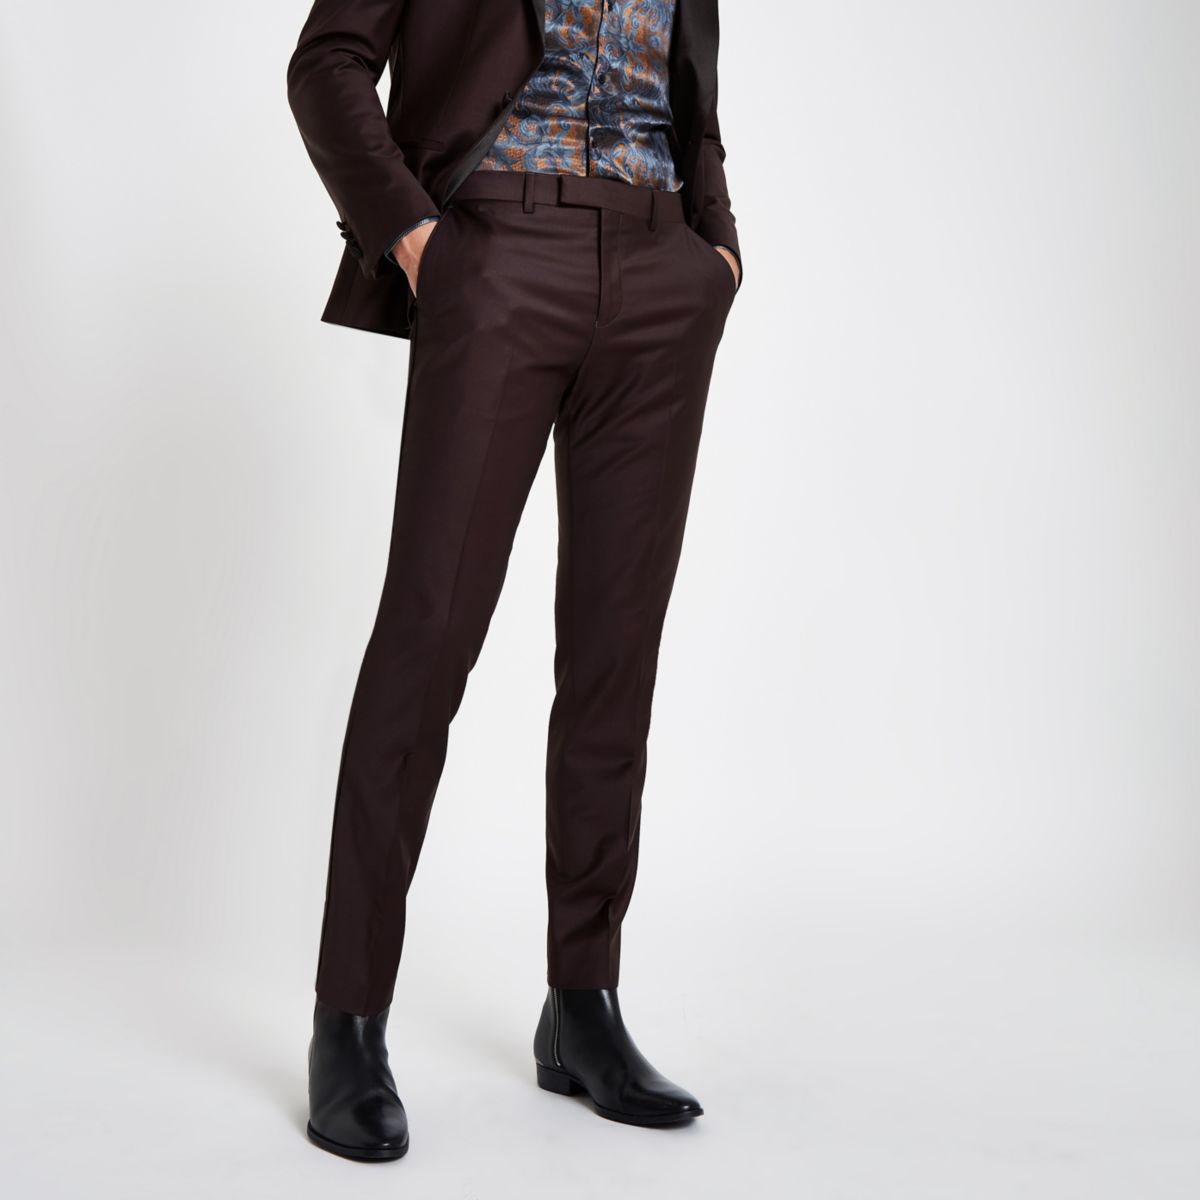 RI 30 burgundy skinny fit suit pants